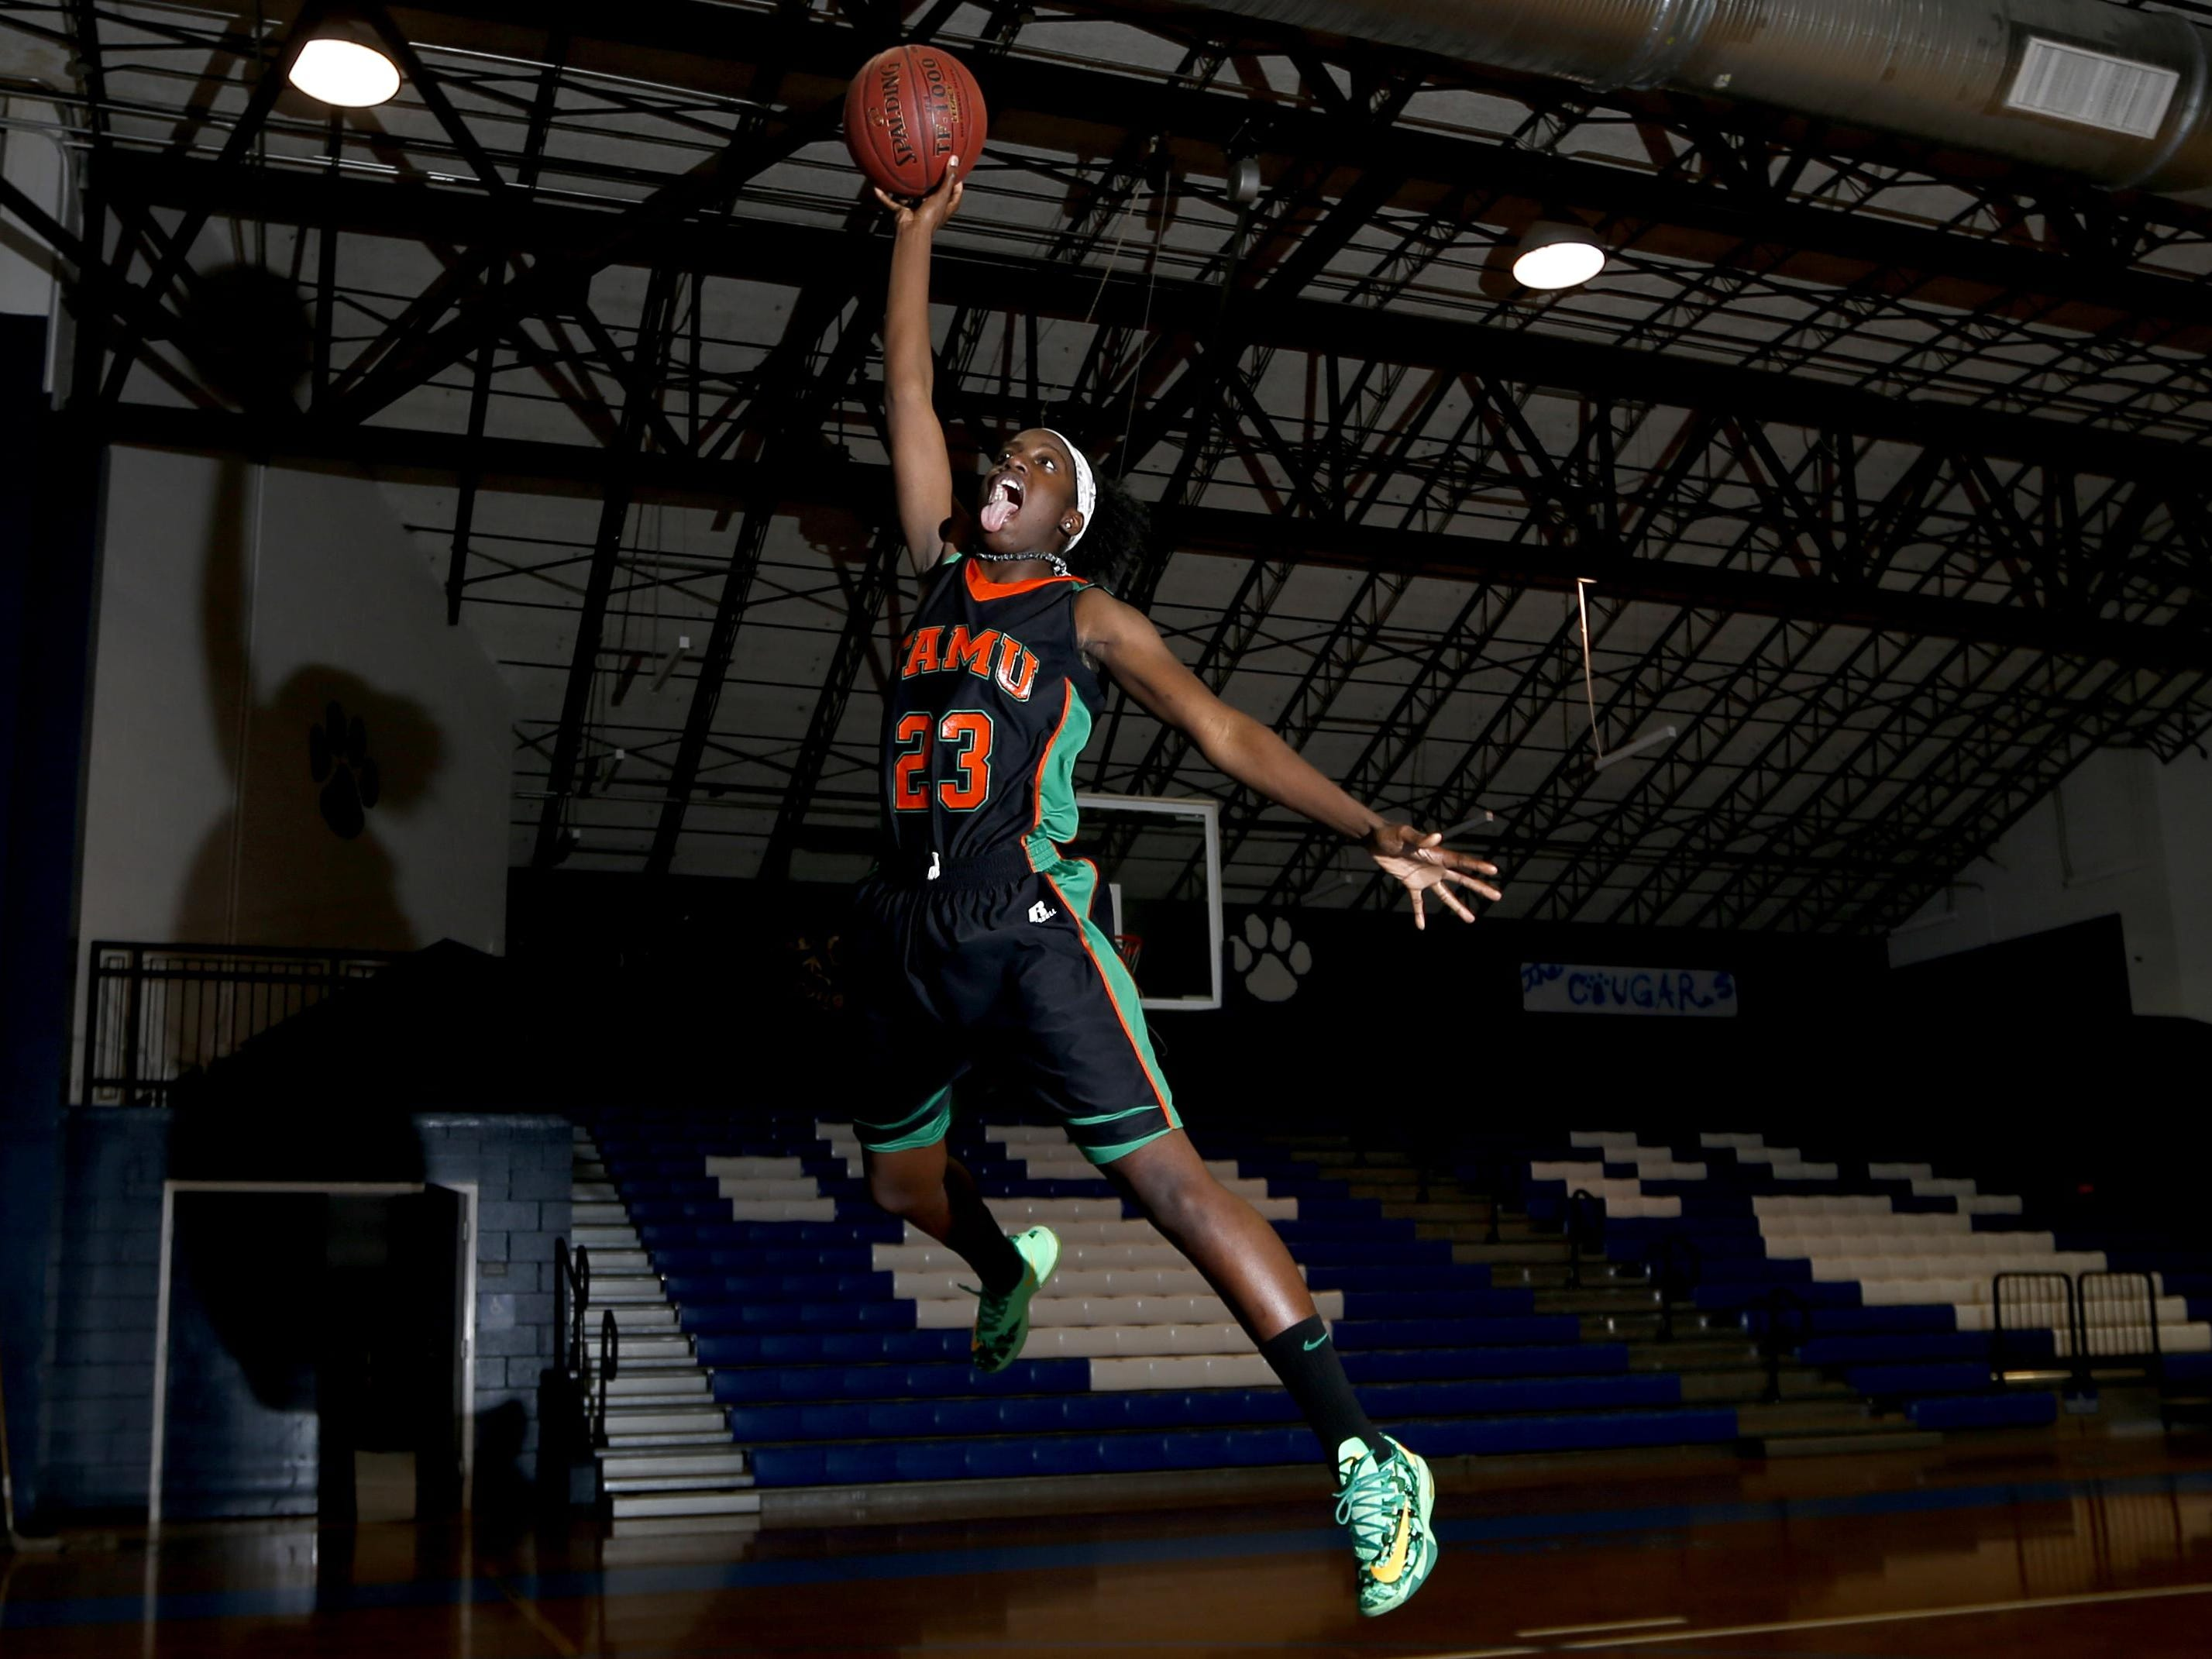 FAMU DRS guard and reigning All-Big Bend Player of the Year Jazmine Jones averaged 18 points, eight rebounds, four assists and three steals per game last season to help lead the Rattlers to the Class 2A state title.